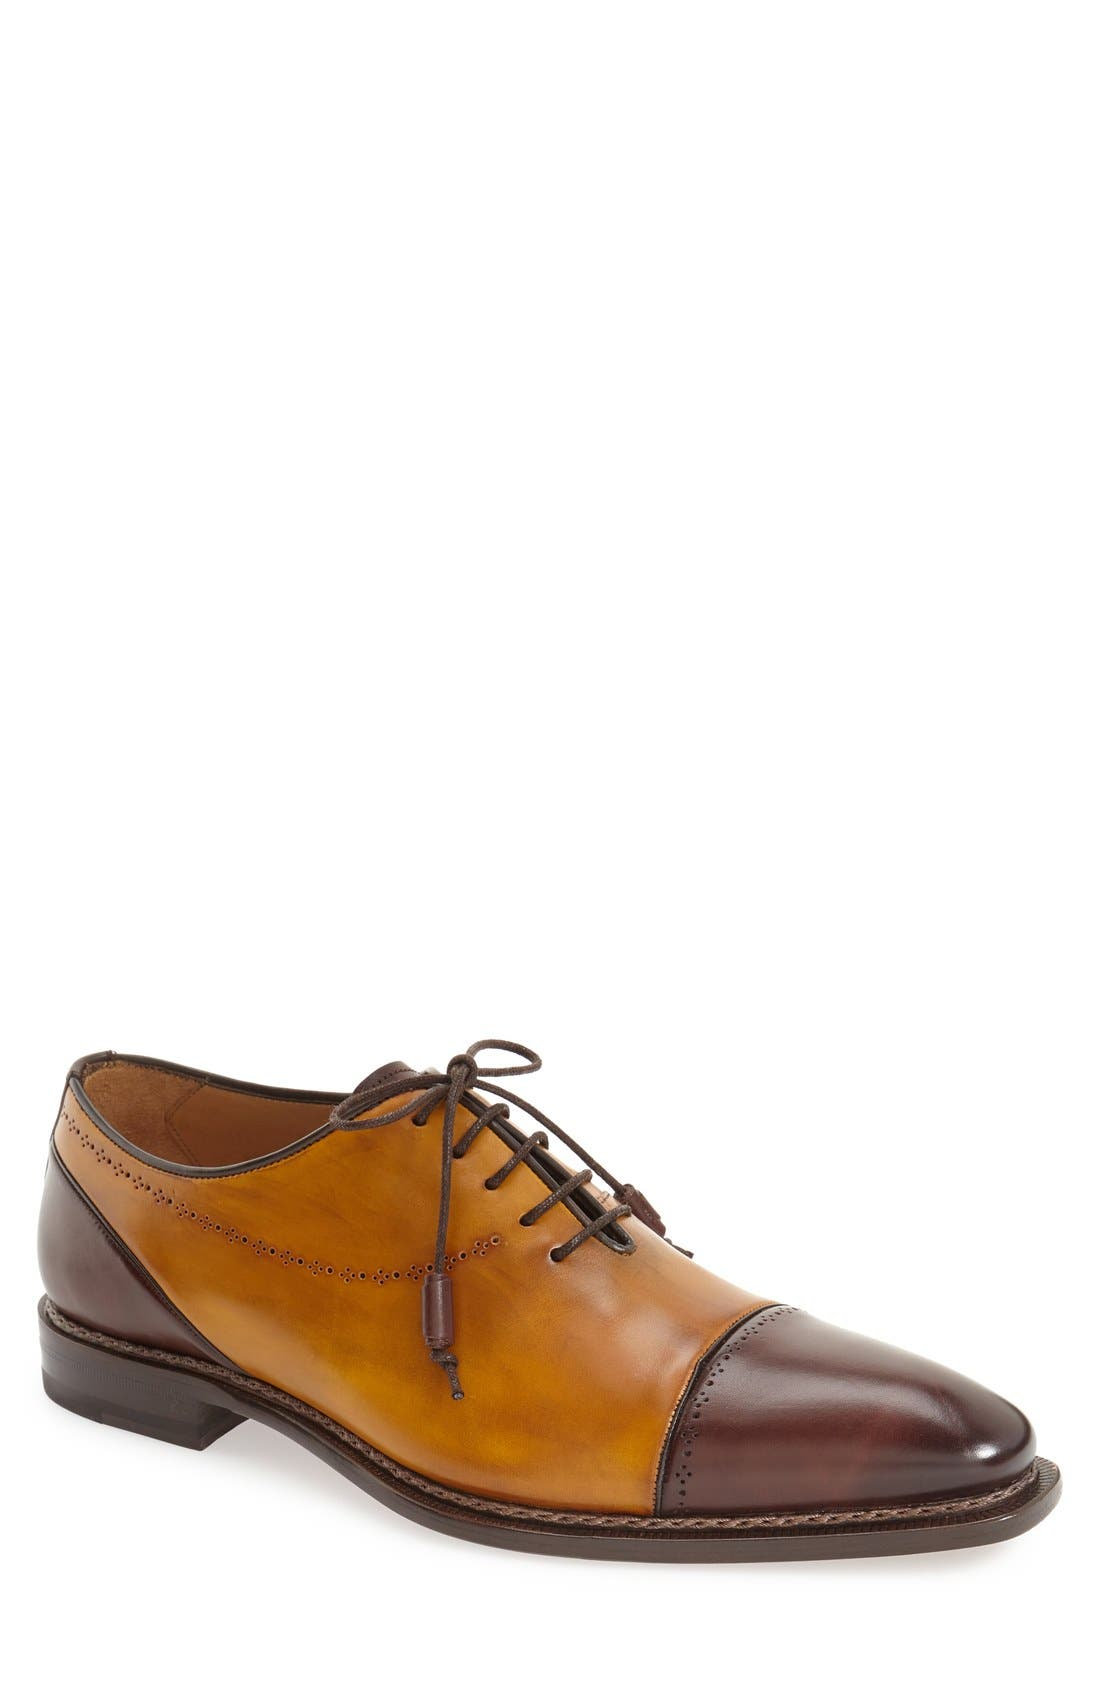 MEZLAN 'Antico' Cap Toe Oxford